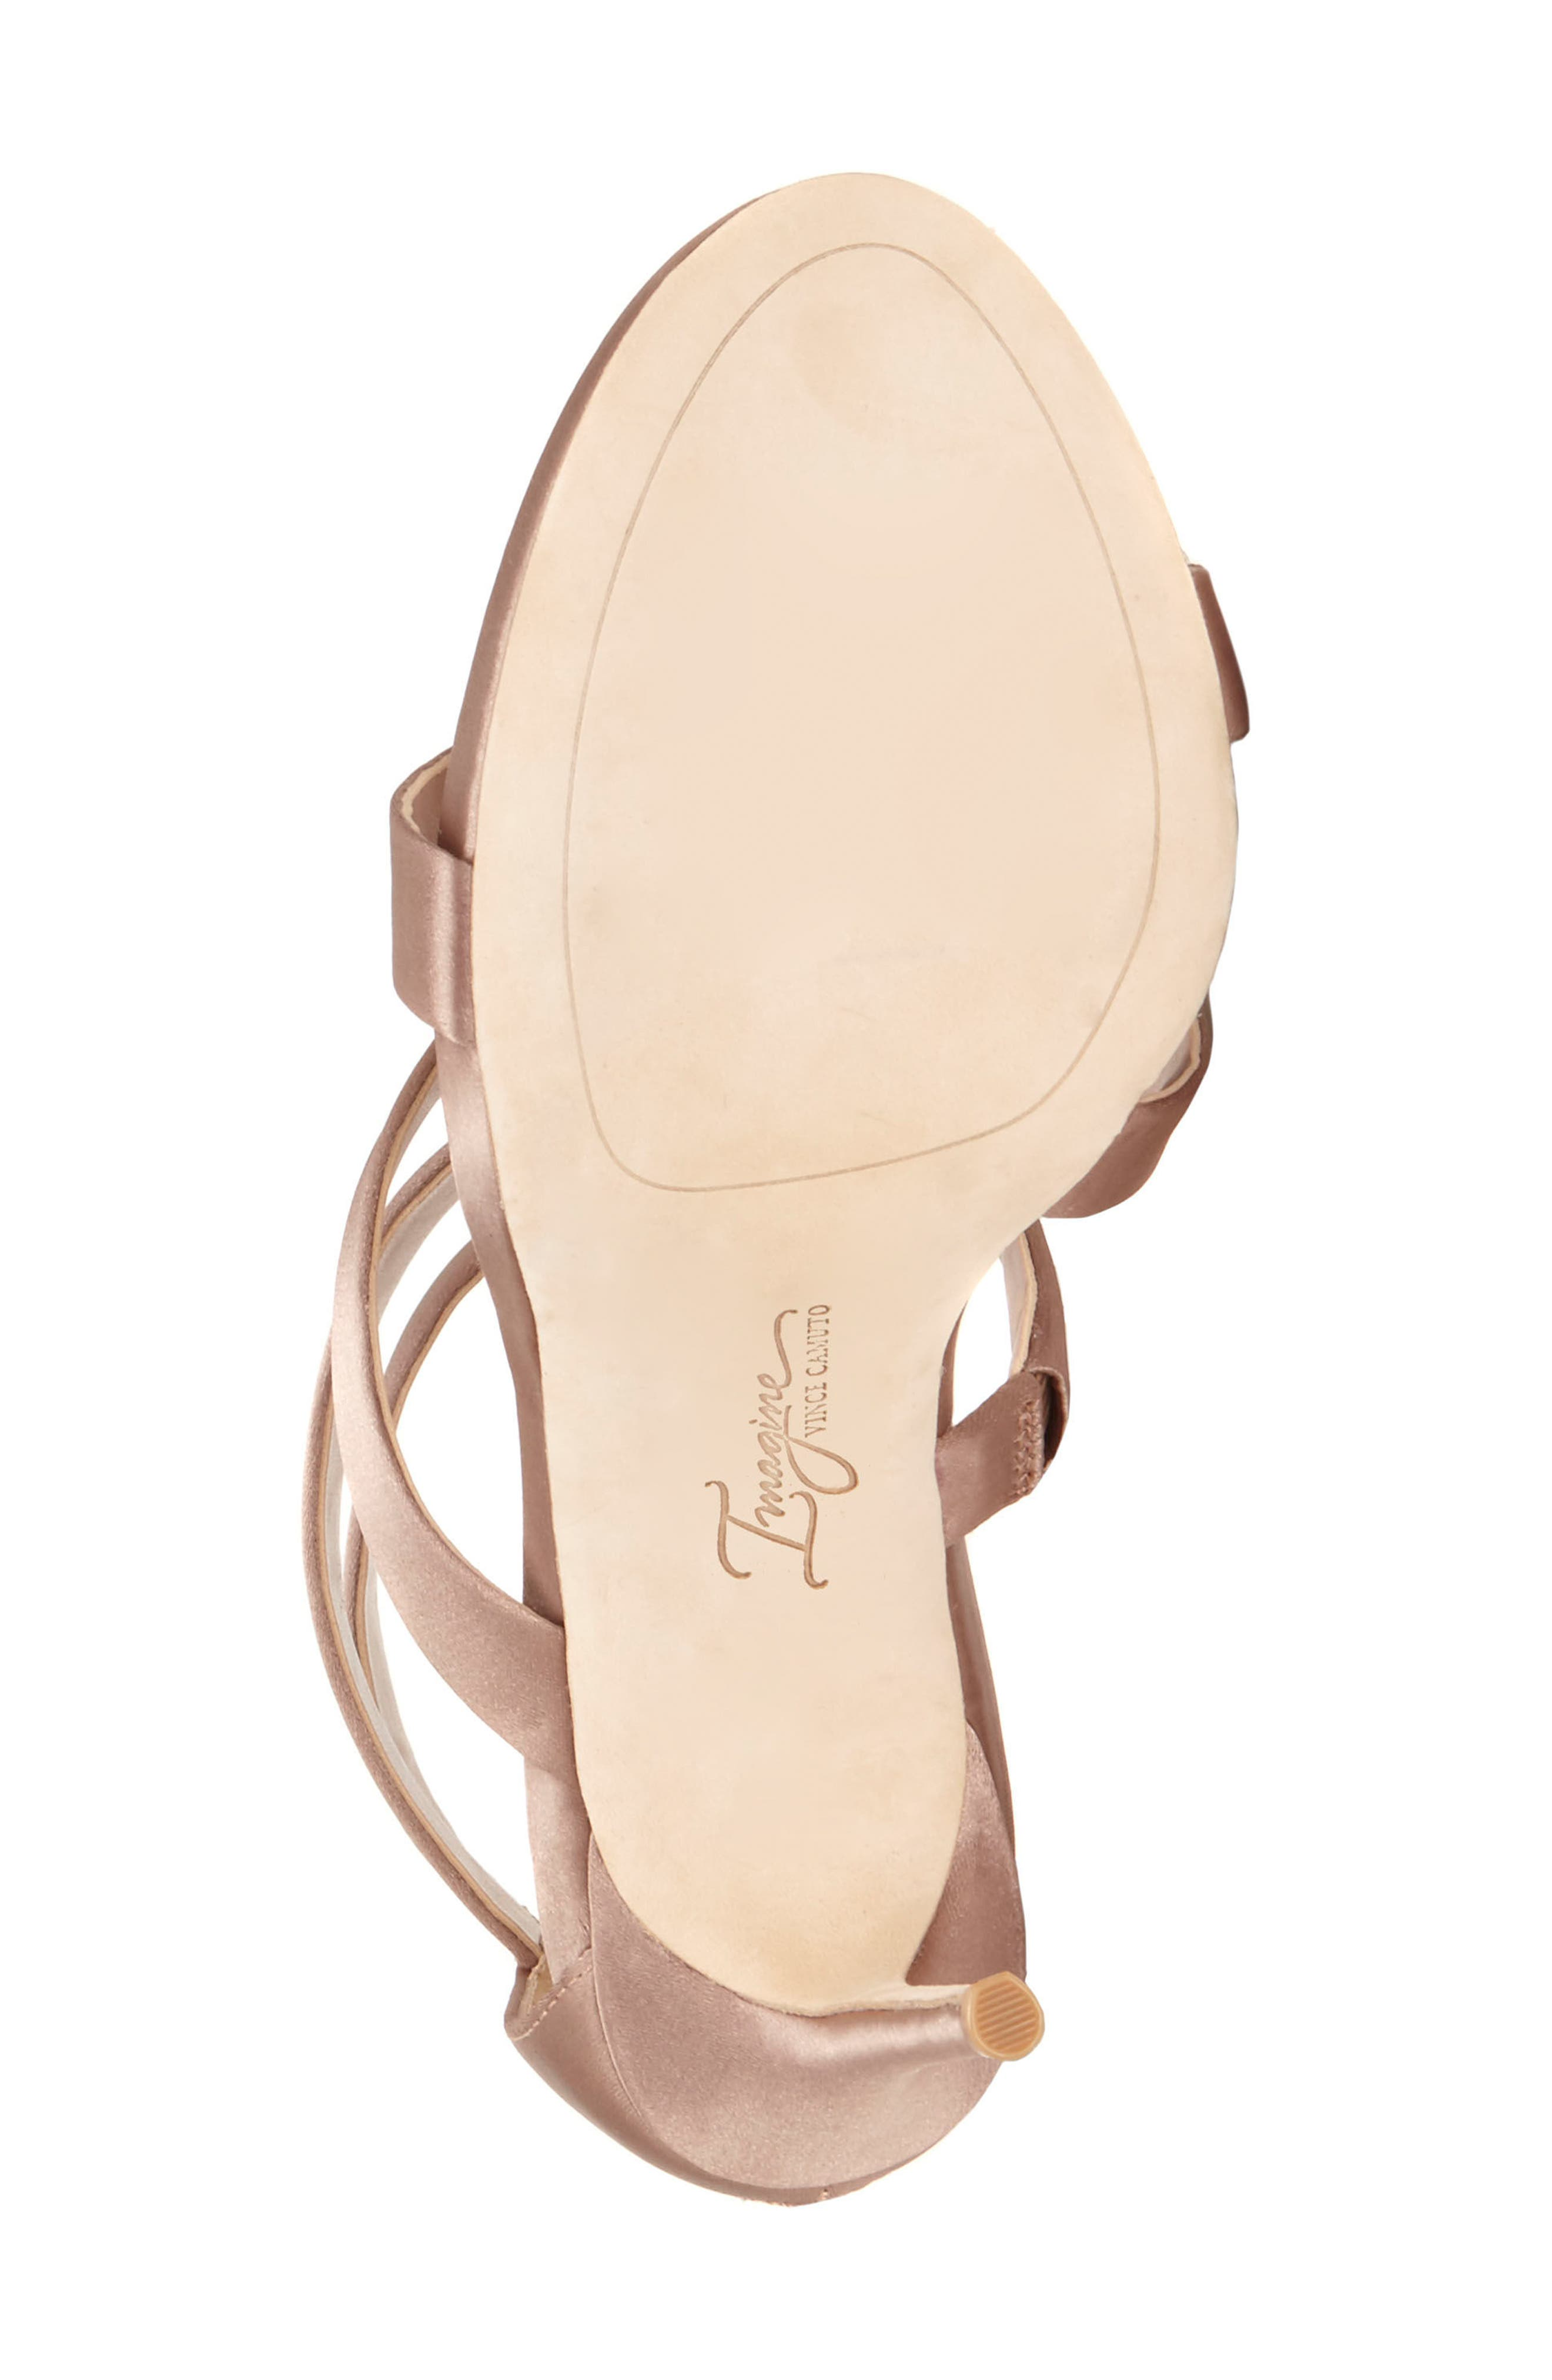 Imagine Vince Camuto Dalles Tall Strappy Sandal,                             Alternate thumbnail 6, color,                             WARM TAUPE SATIN